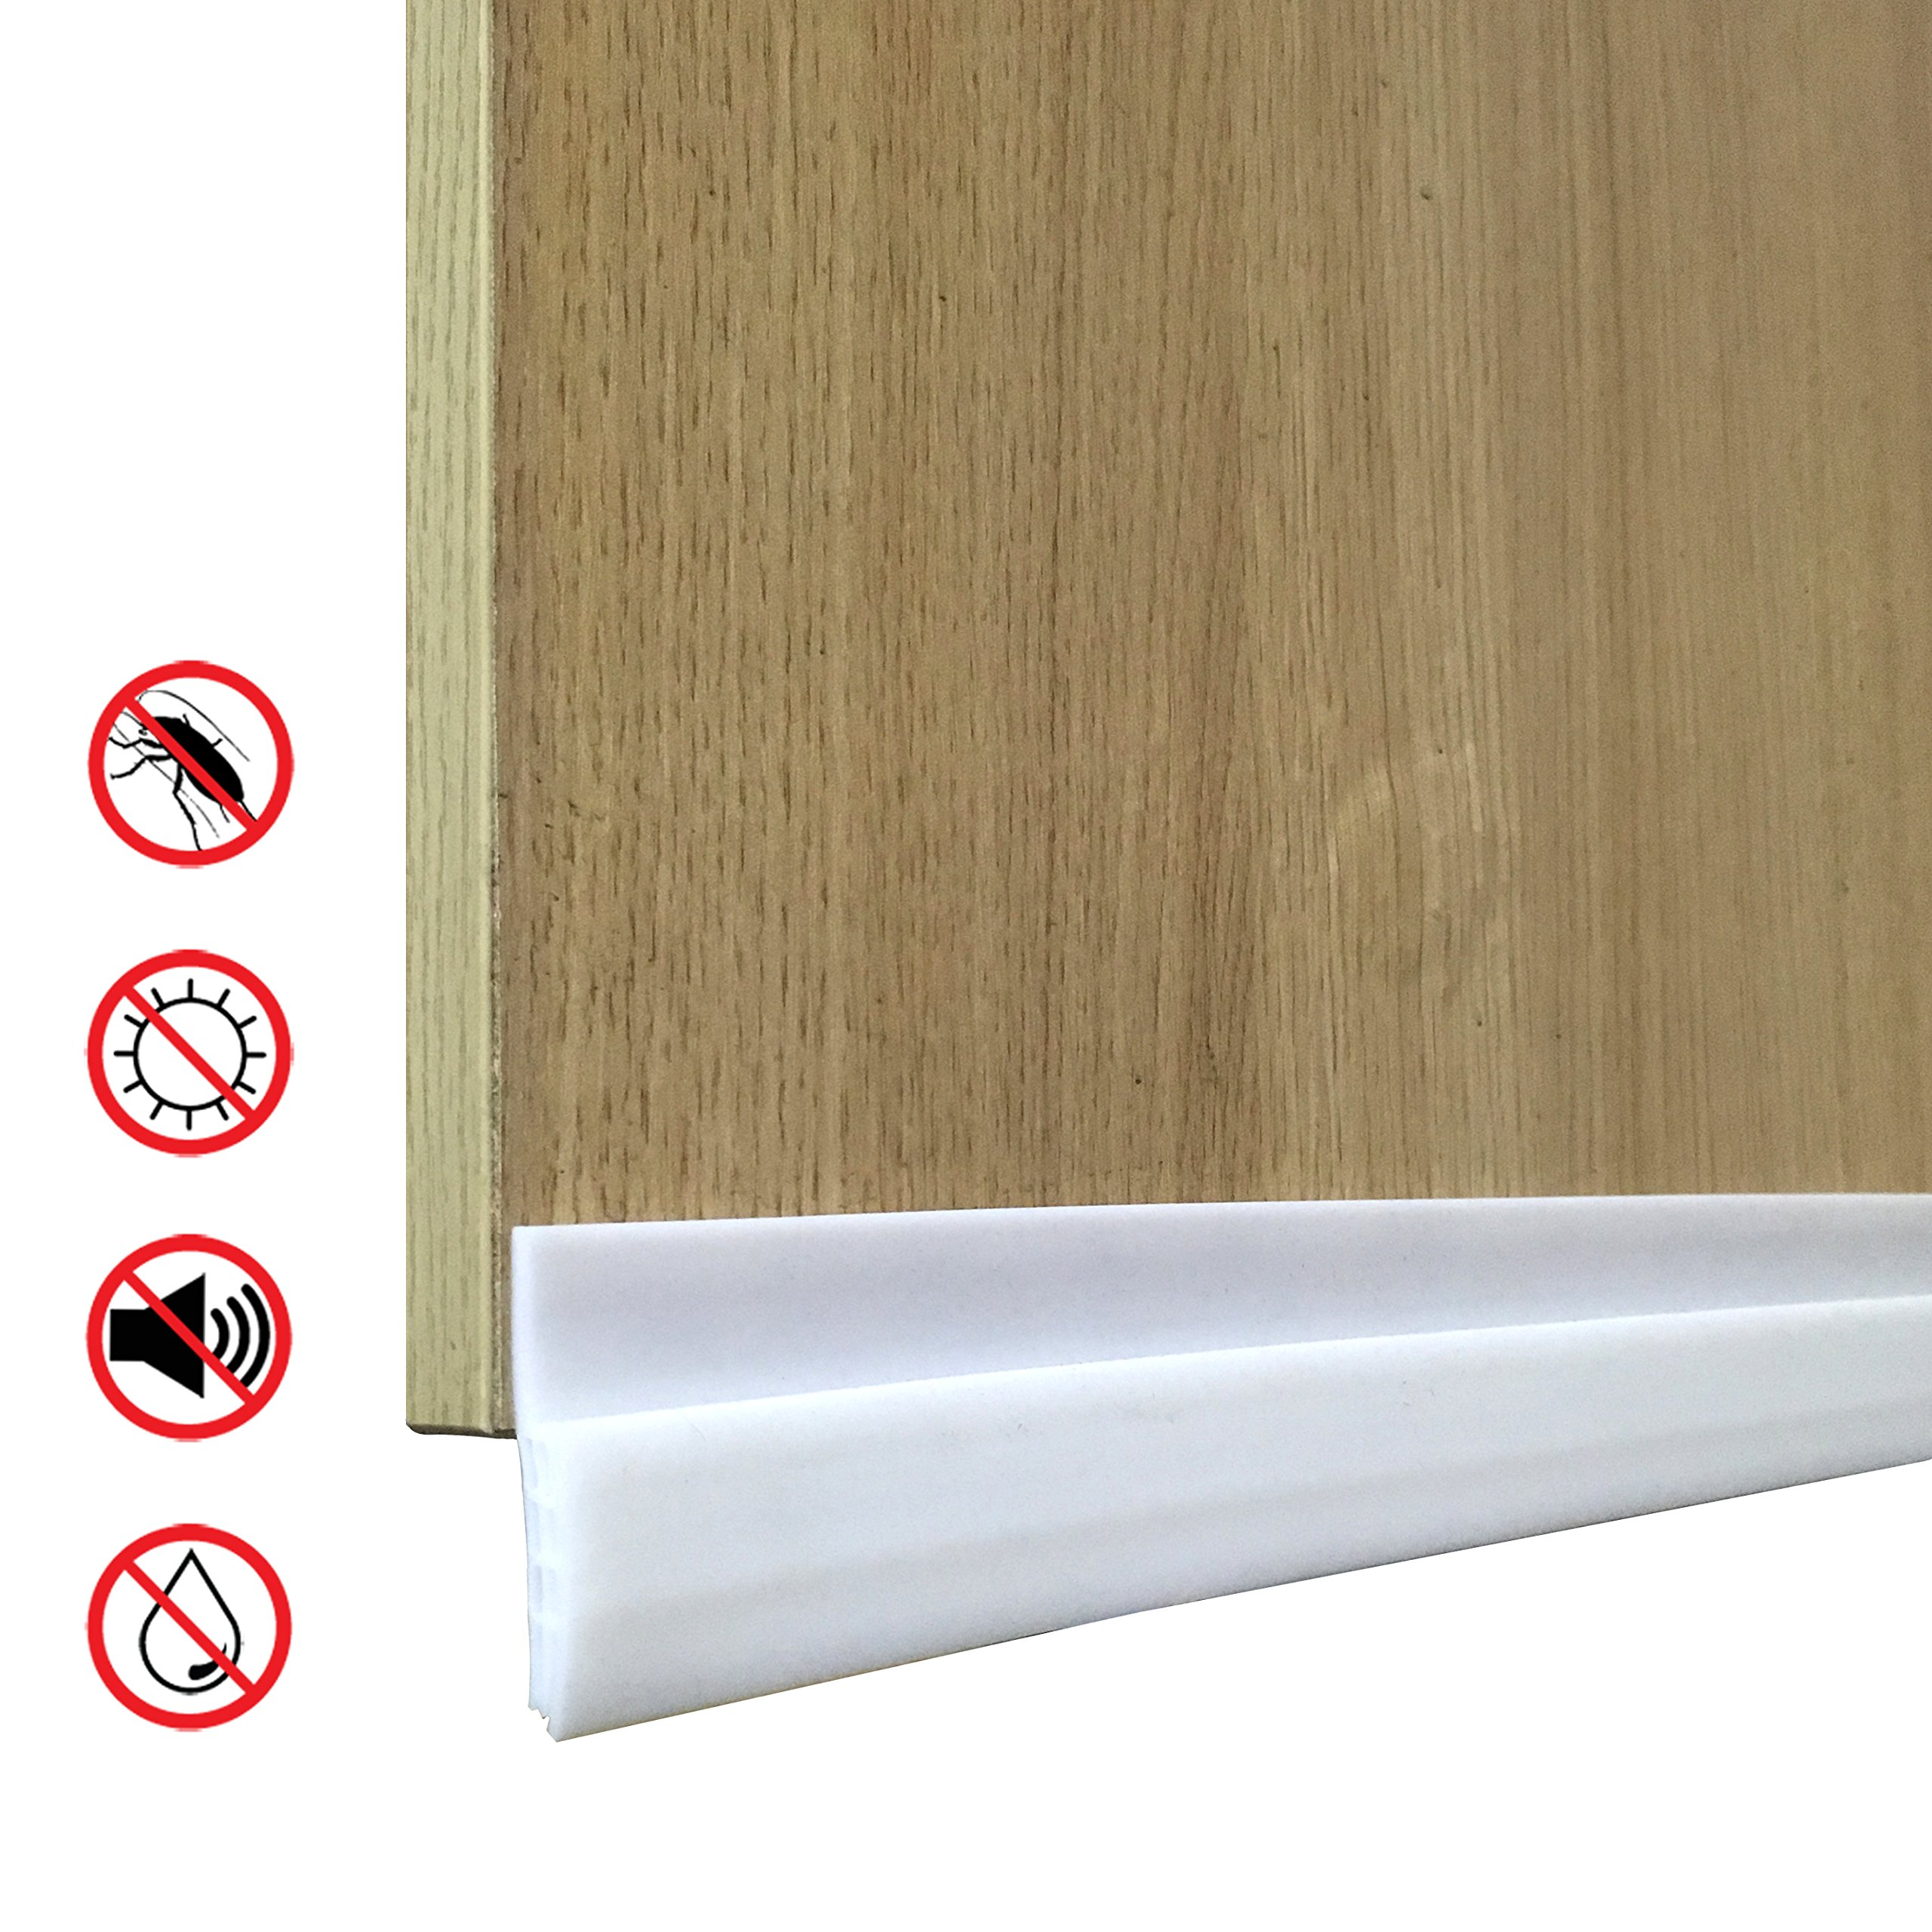 Door Under Seal, 2 X 39.5 inch Door Sweep Door, Anti-Noise, Pest, Warm, Door Draft Stopper, Door Under Blocker with Acrylic Adhesive (White)